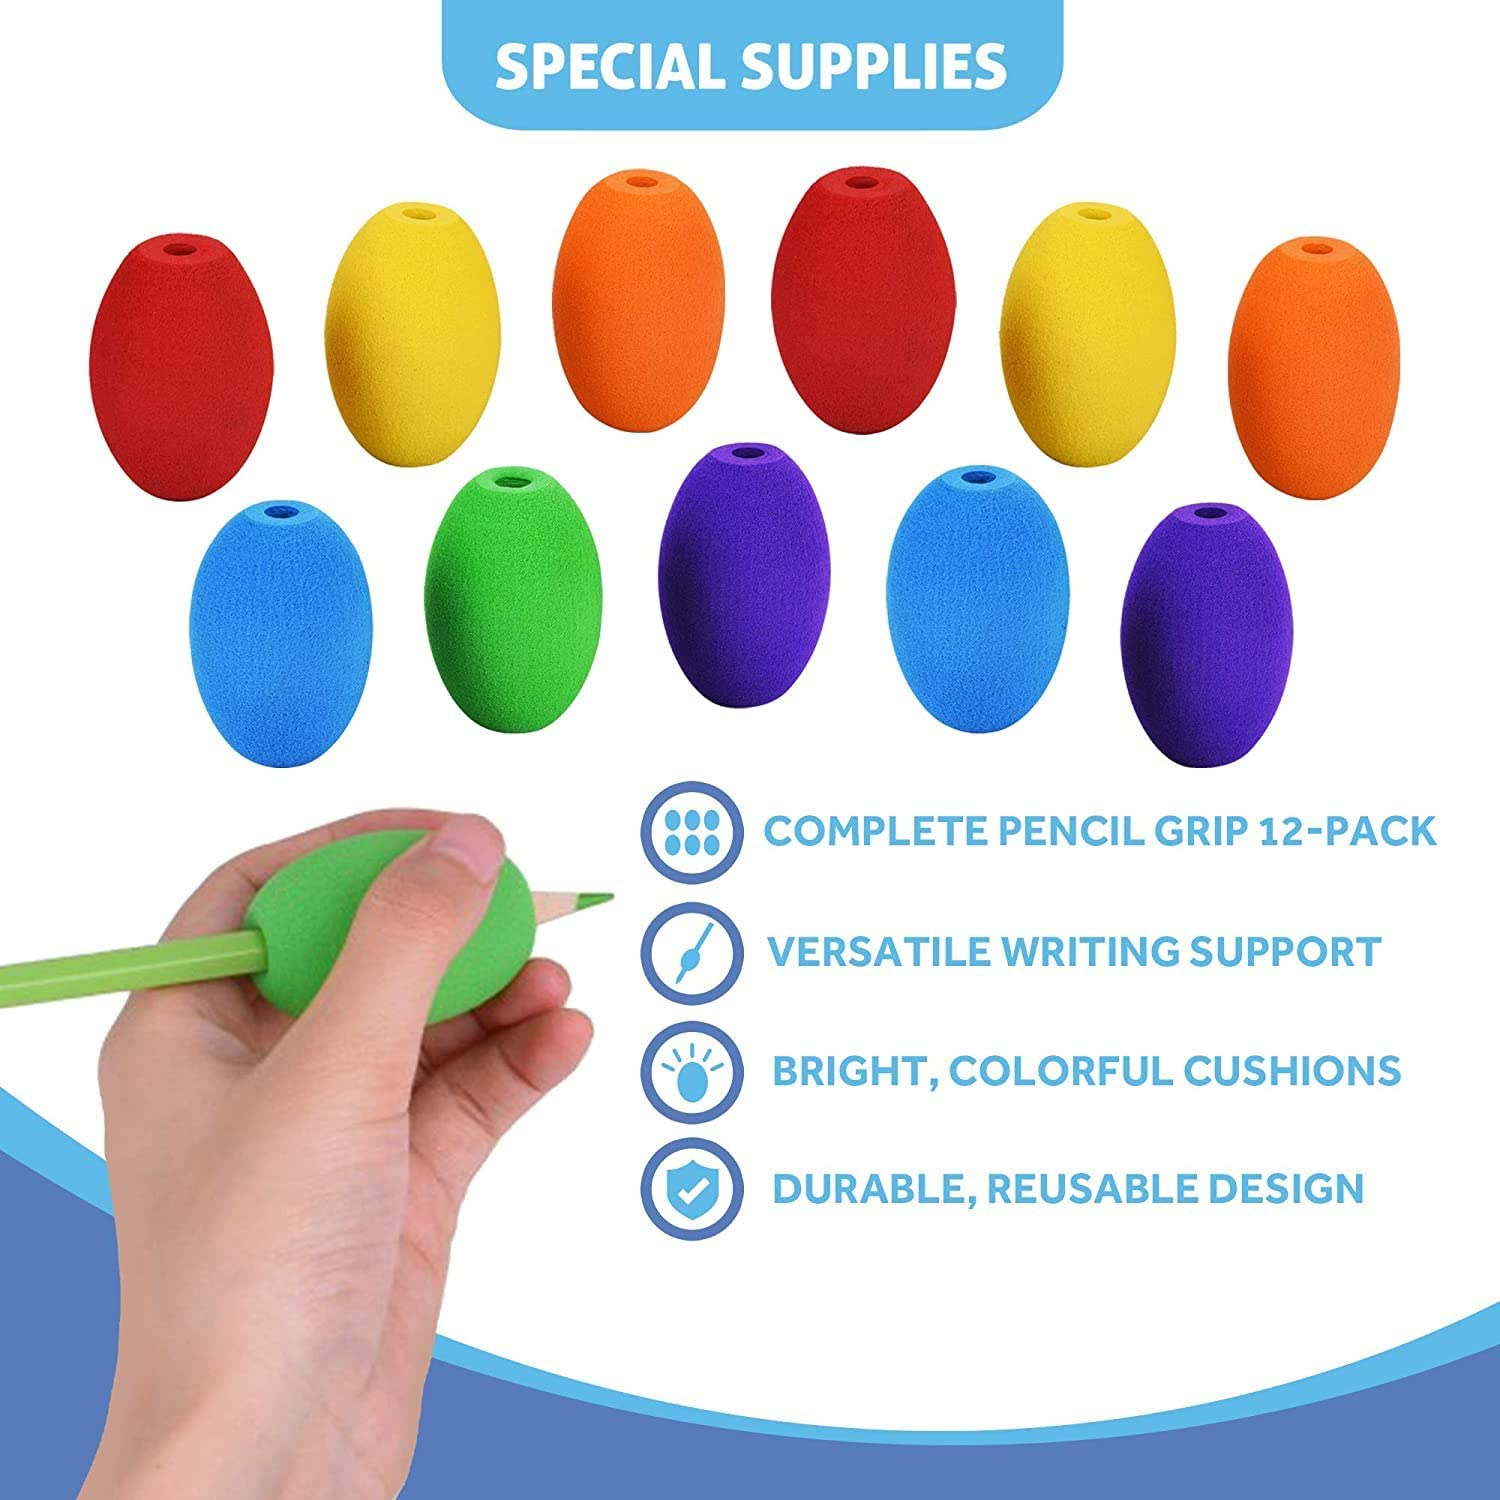 Special Supplies Egg Pencil Grips for Kids and Adults Colorful, Cushioned Holders for Handwriting, Drawing, Coloring - Ergonomic Right or Left-Handed Use - Reusable (12-Pack): Health & Personal Care